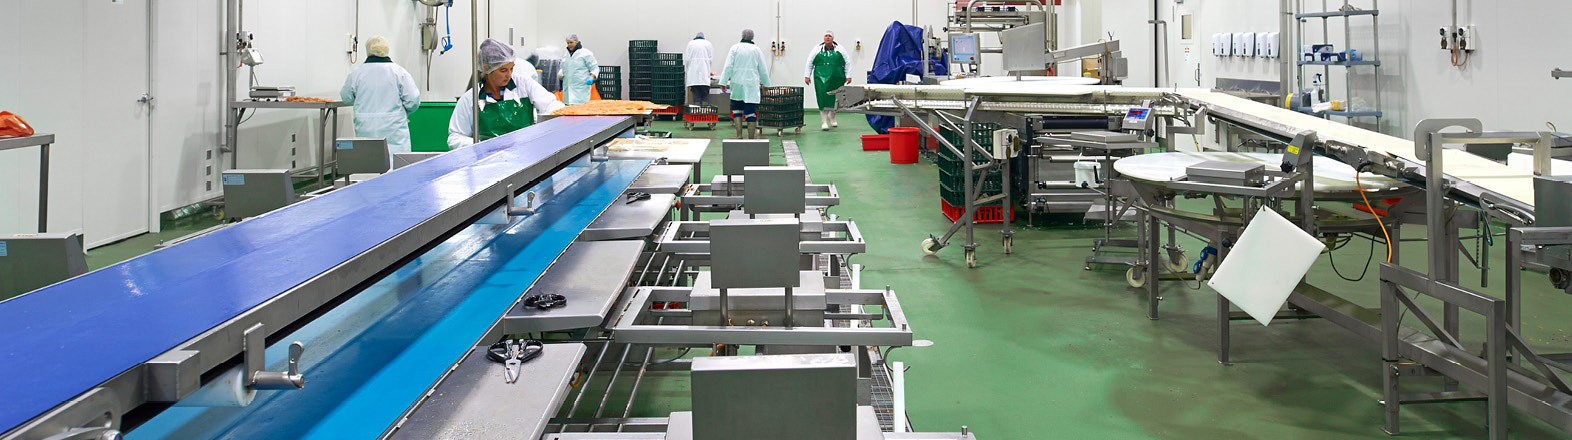 Looking For HACCP International  Certified Antimicrobial Flooring?